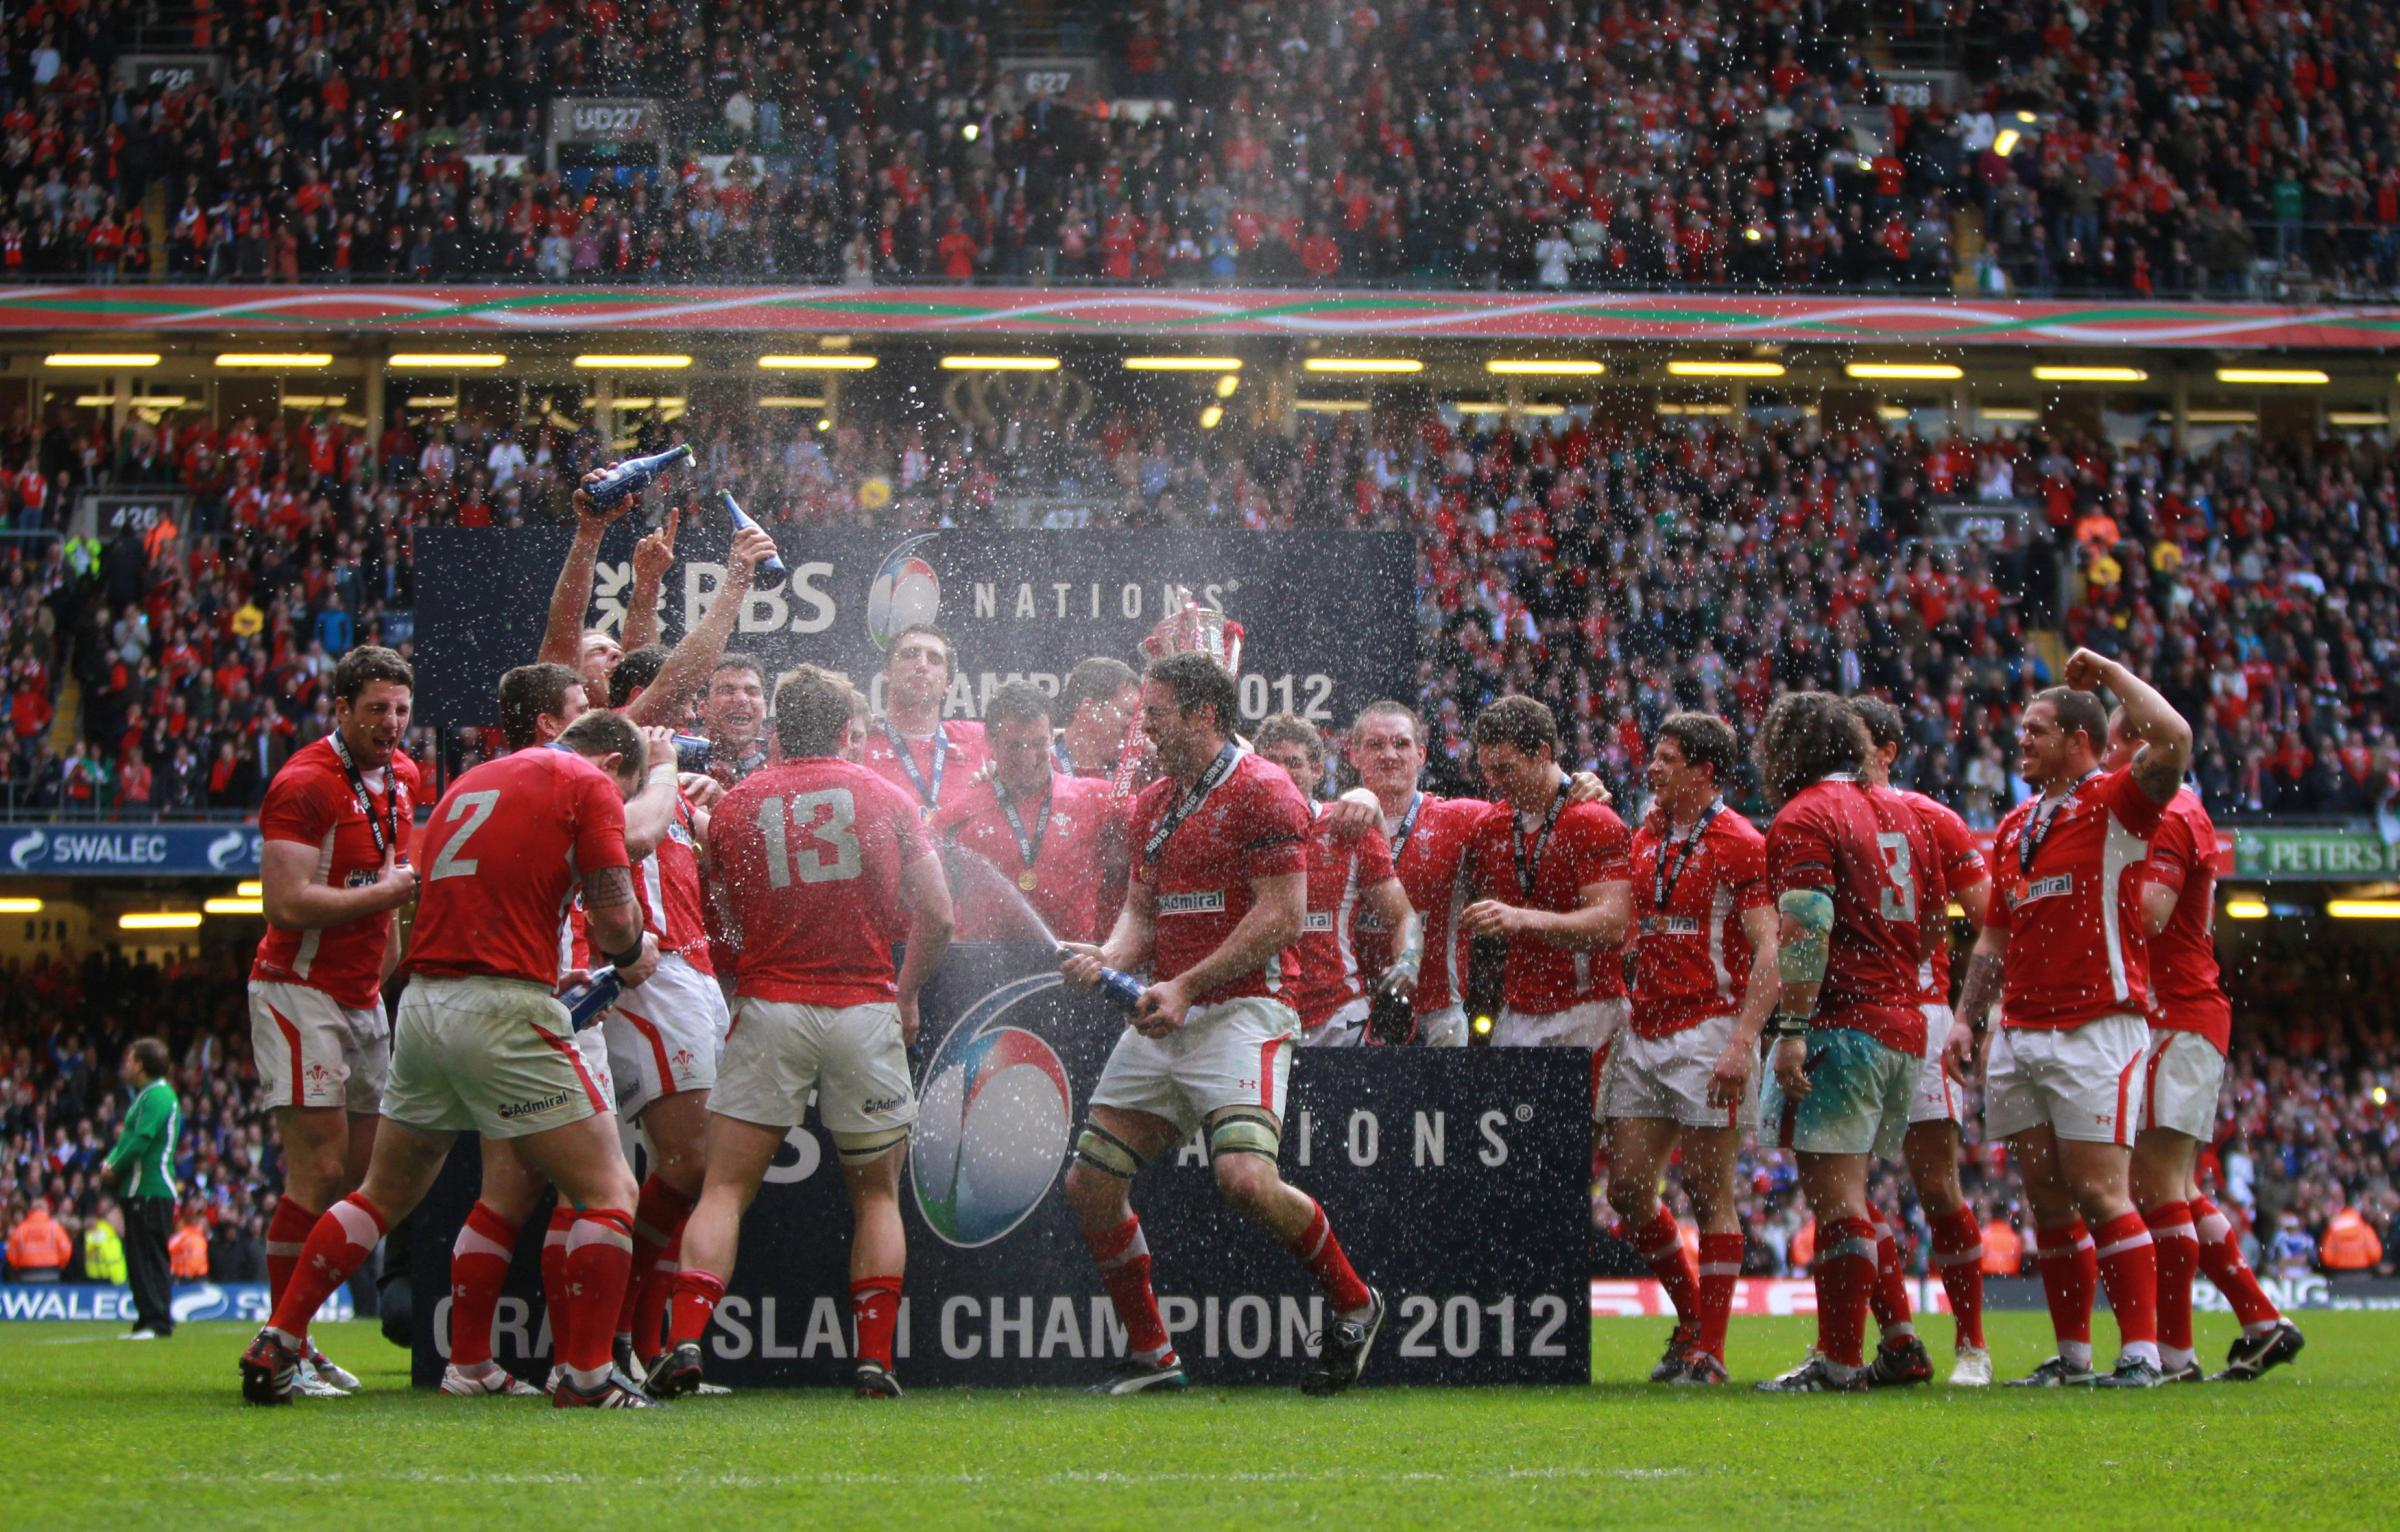 File photo dated 17/03/2012 of Wales celebrating winning the Grand Slam during the RBS 6 Nations match at the Millennium Stadium, Cardiff. PRESS ASSOCIATION Photo. Issue date: Friday January 24, 2014. Wales will create history if they win this season'